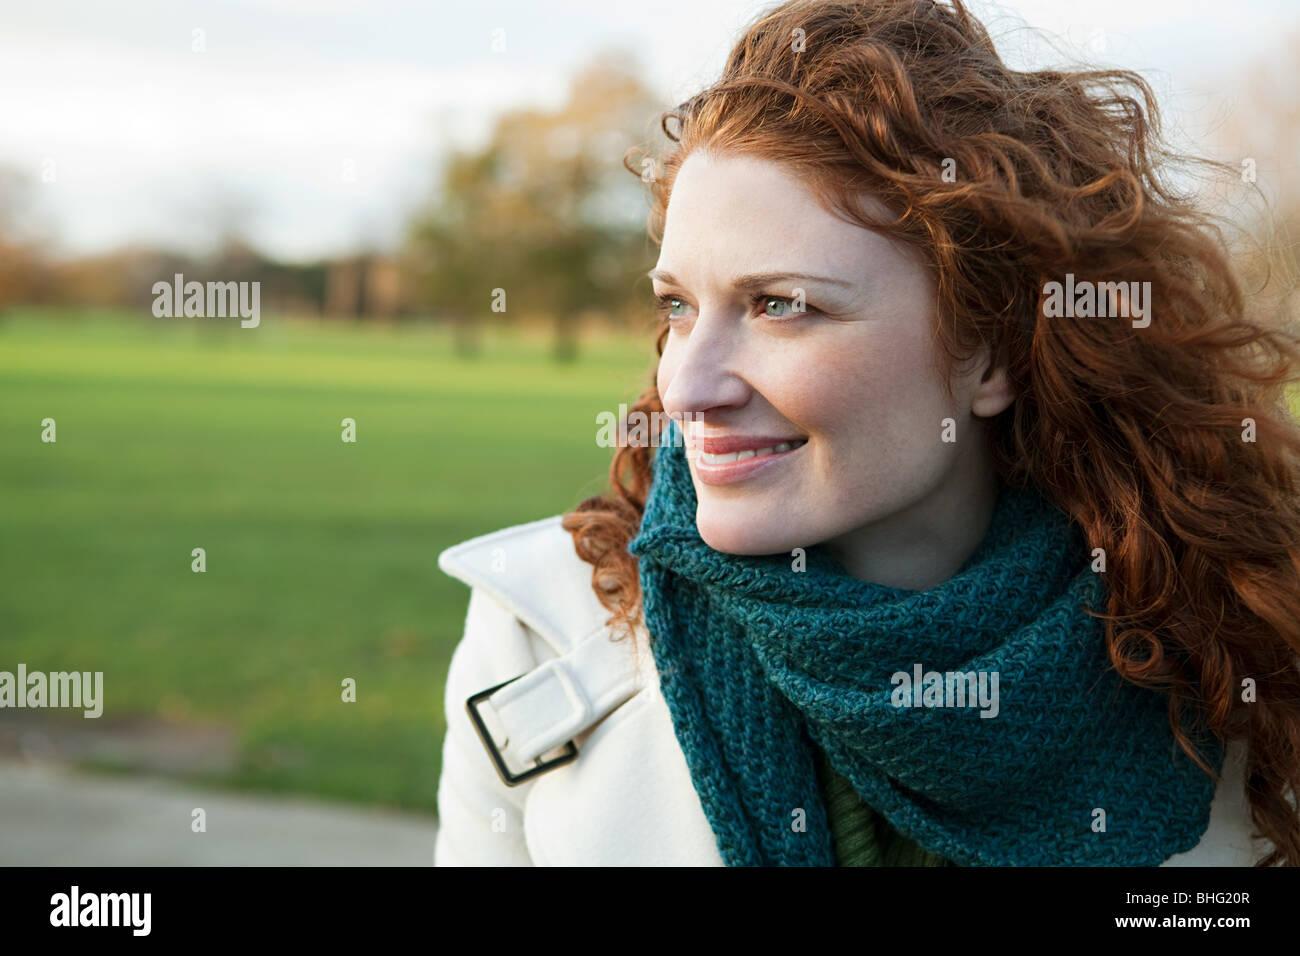 Portrait of a smiling red haired woman - Stock Image